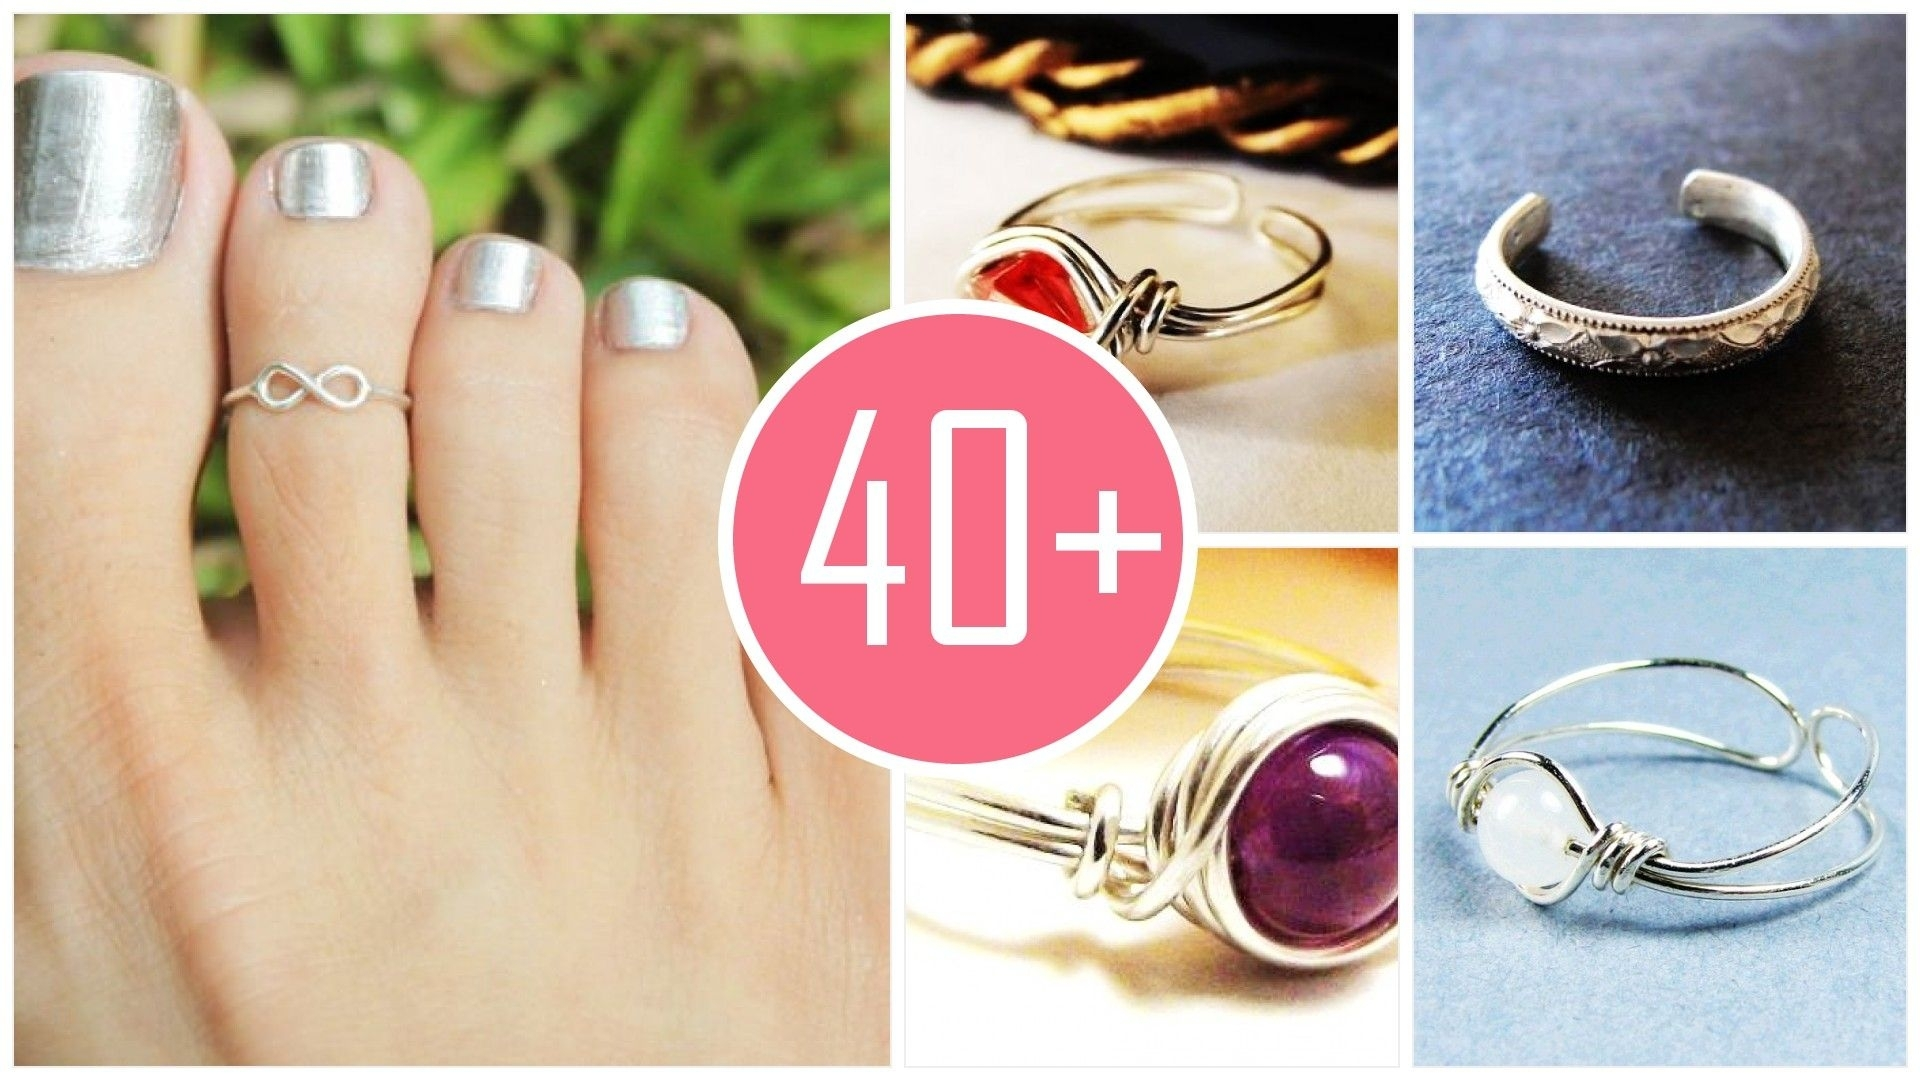 ☻ Let's To To The Party! Georgina Haig's Recommended Adjustable Within Recent White Gold Toe Rings (View 9 of 15)